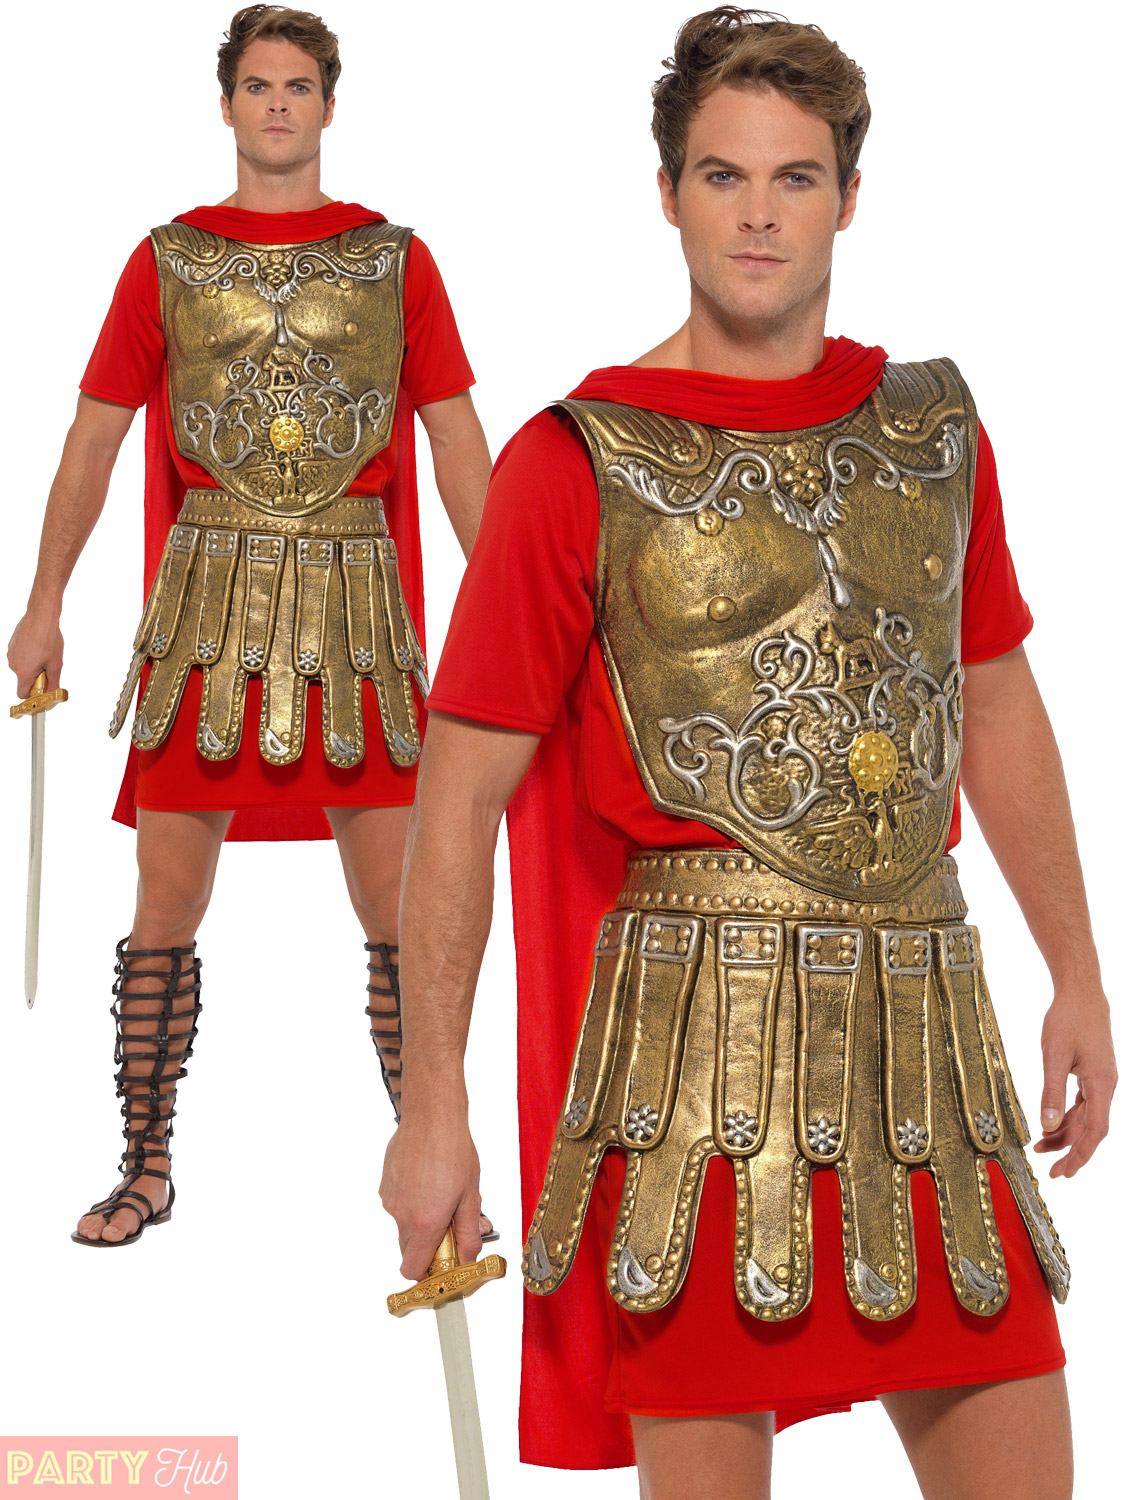 Mens-Roman-Gladiator-Costume-Adults-Soldier-Greek-Warrior-  sc 1 st  eBay & Mens Roman Gladiator Costume Adults Soldier Greek Warrior Fancy ...